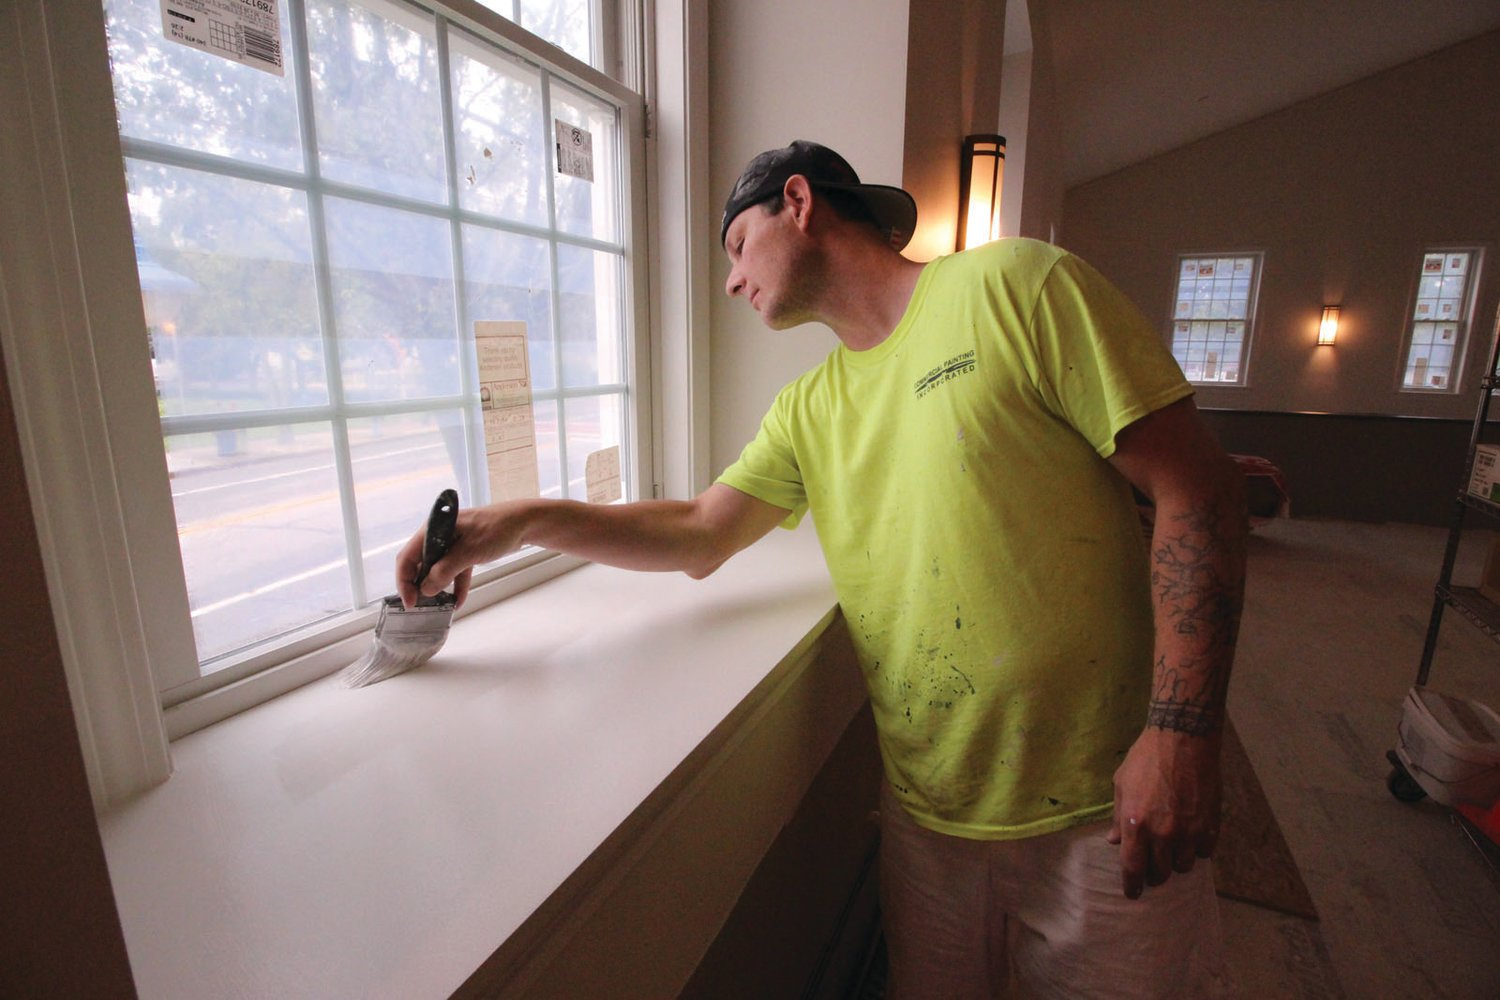 WITHOUT A BLEMISH:  Ray Hoffman of Commercial Painting in Pawtucket puts the finish coat on windowsills in the sanctuary. With baseboard heating having been installed and wall sconces installed, next steps include the chair railings and the flooring. (Warwick Beacon photos)